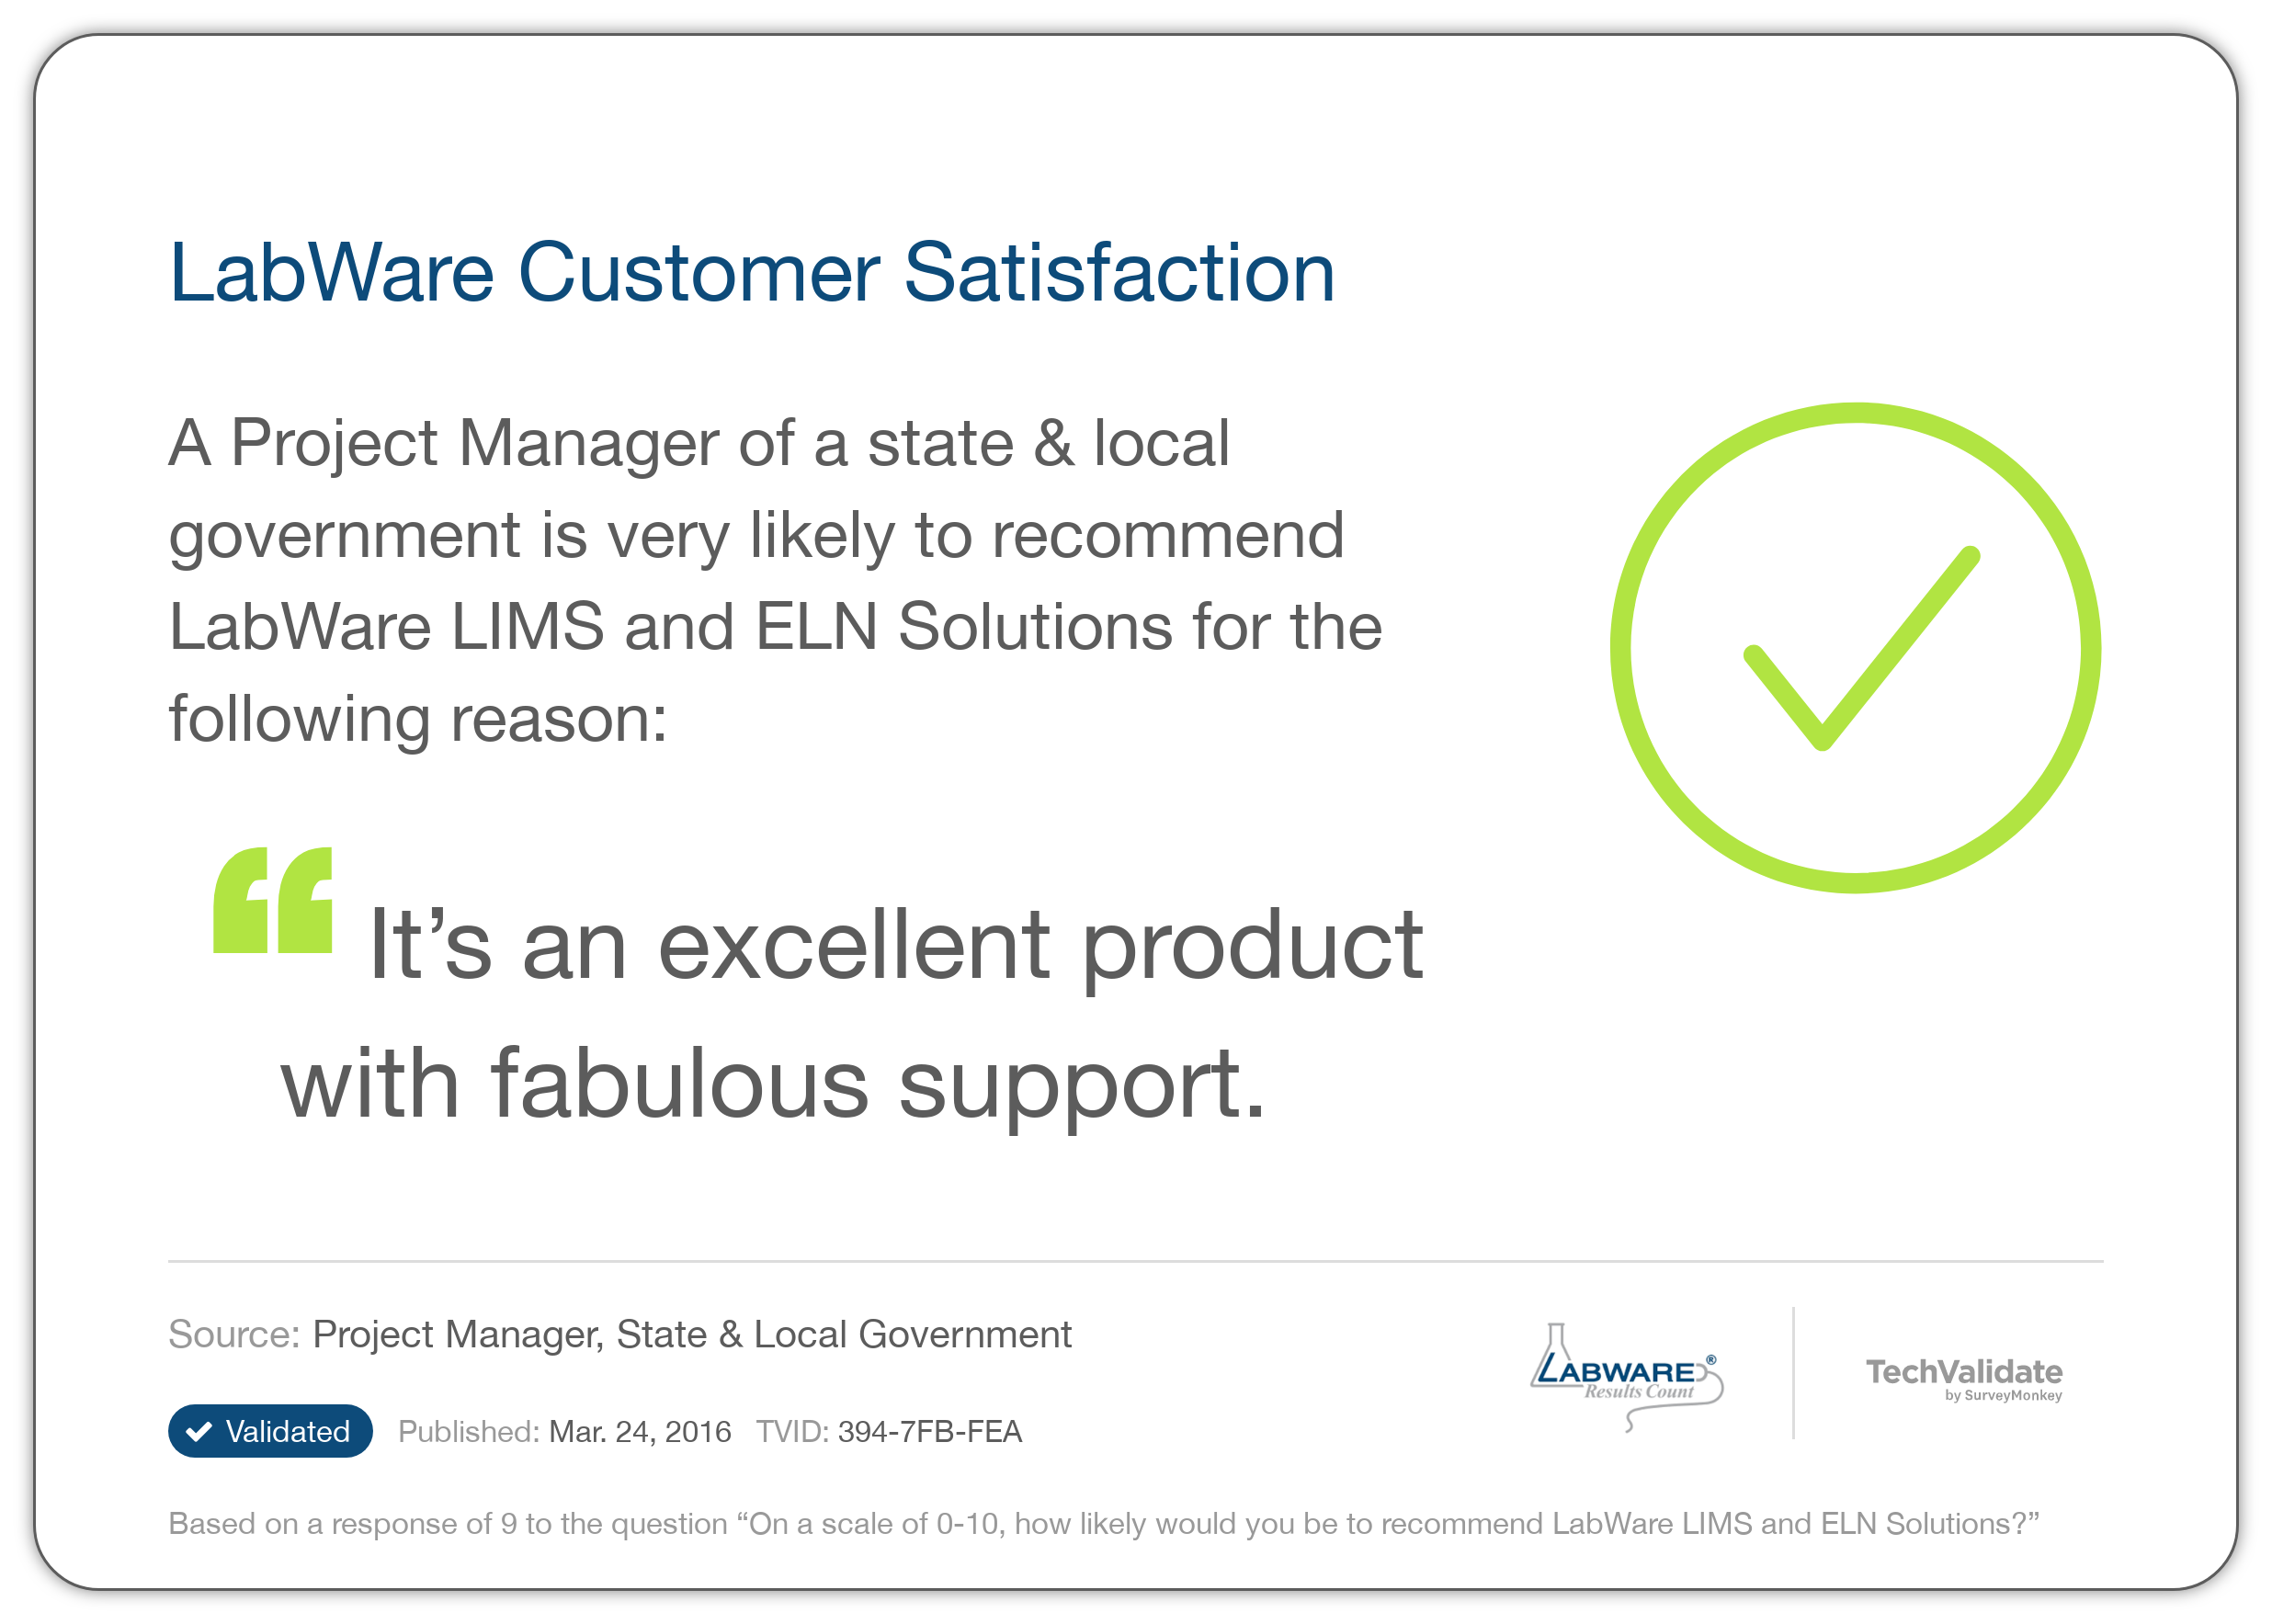 LabWare Customer Satisfaction